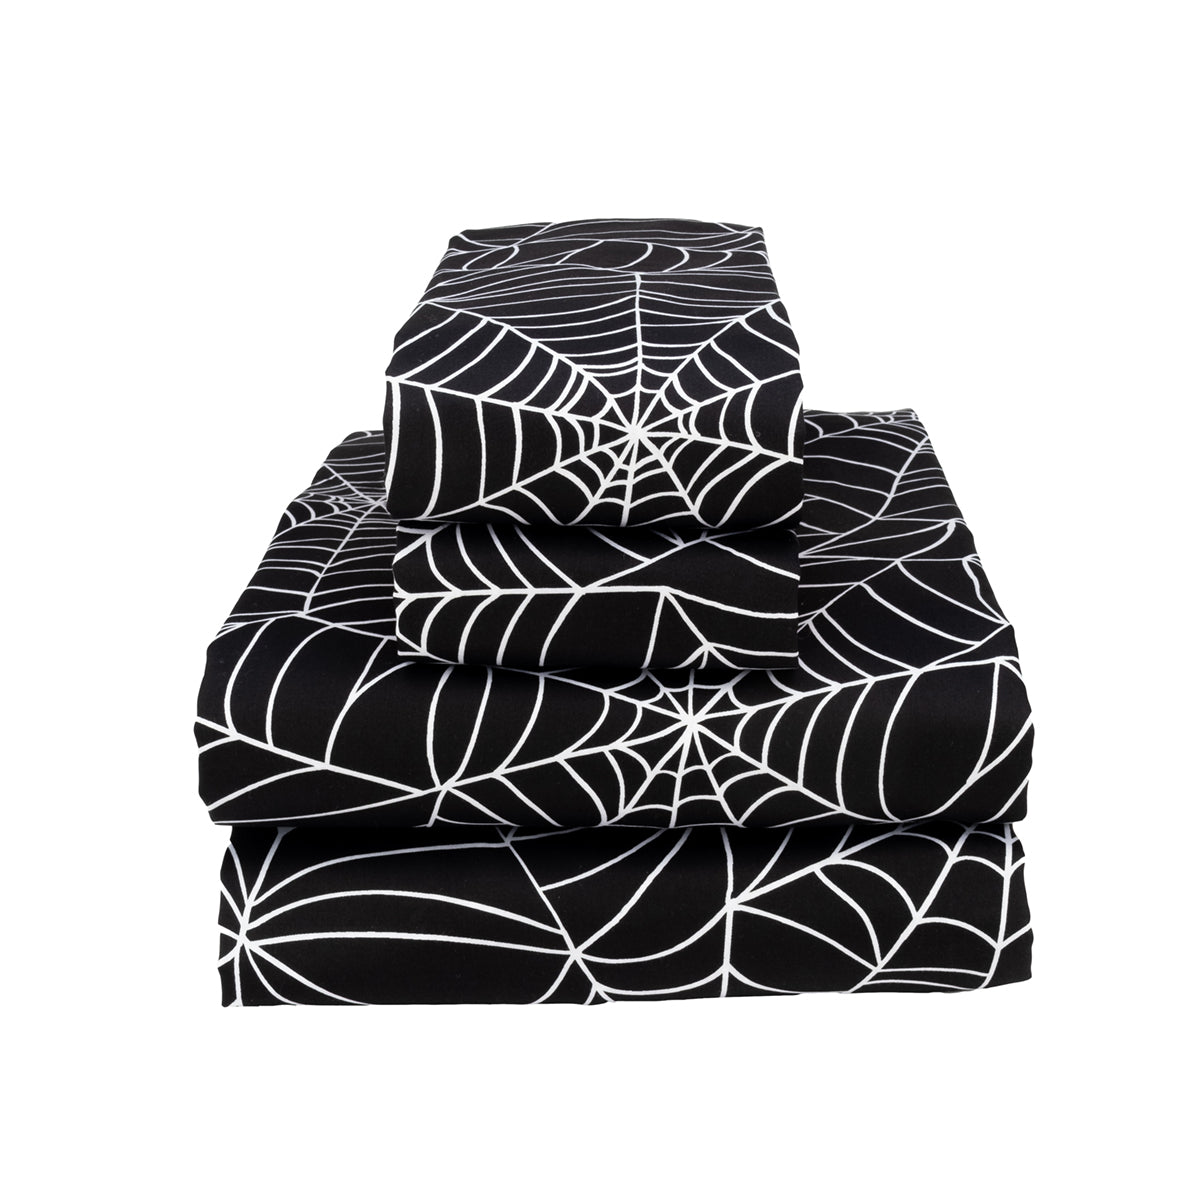 Spider Web Sheets